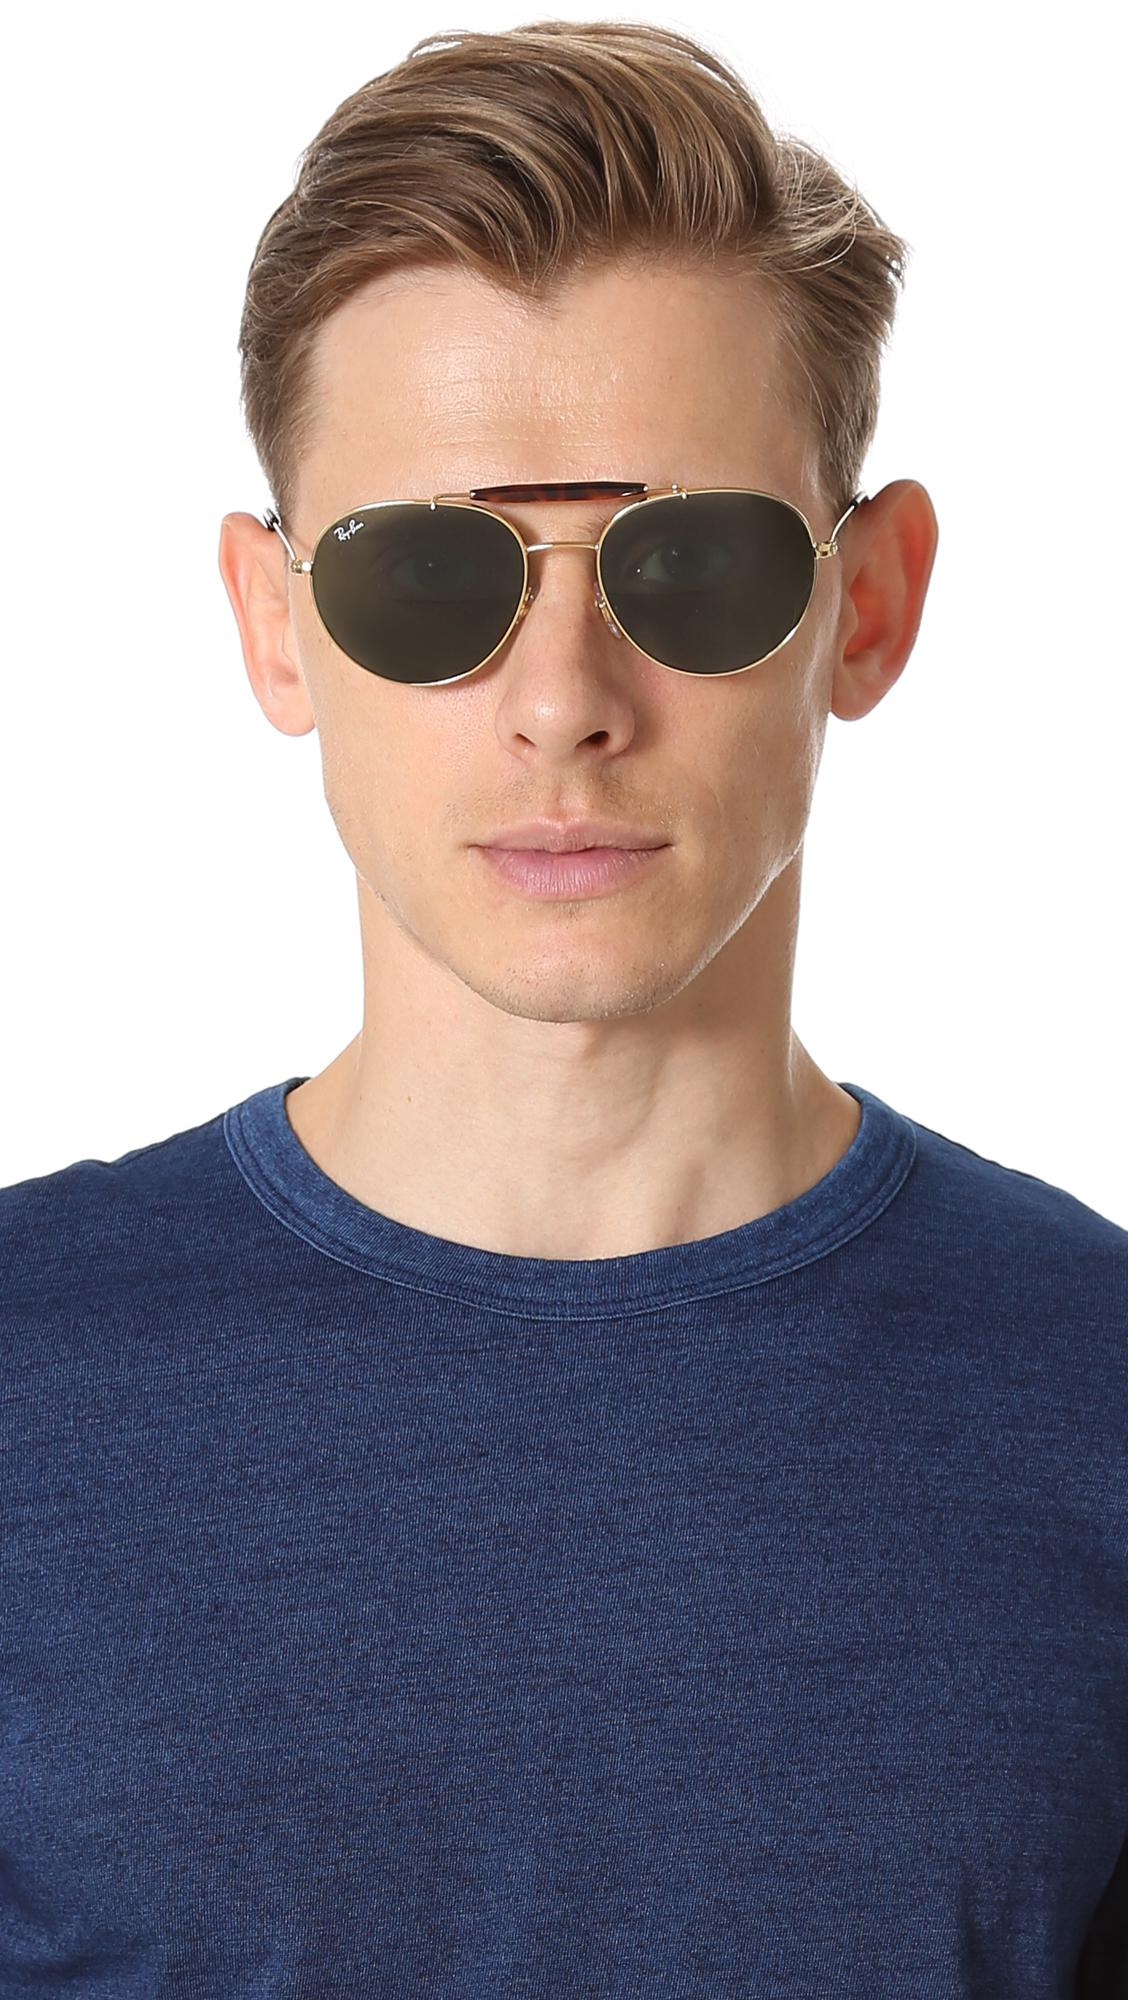 ab06b70cc5 Ray ban green double bridge aviators for men view fullscreen jpg 1128x2000 Ray  ban double bridge